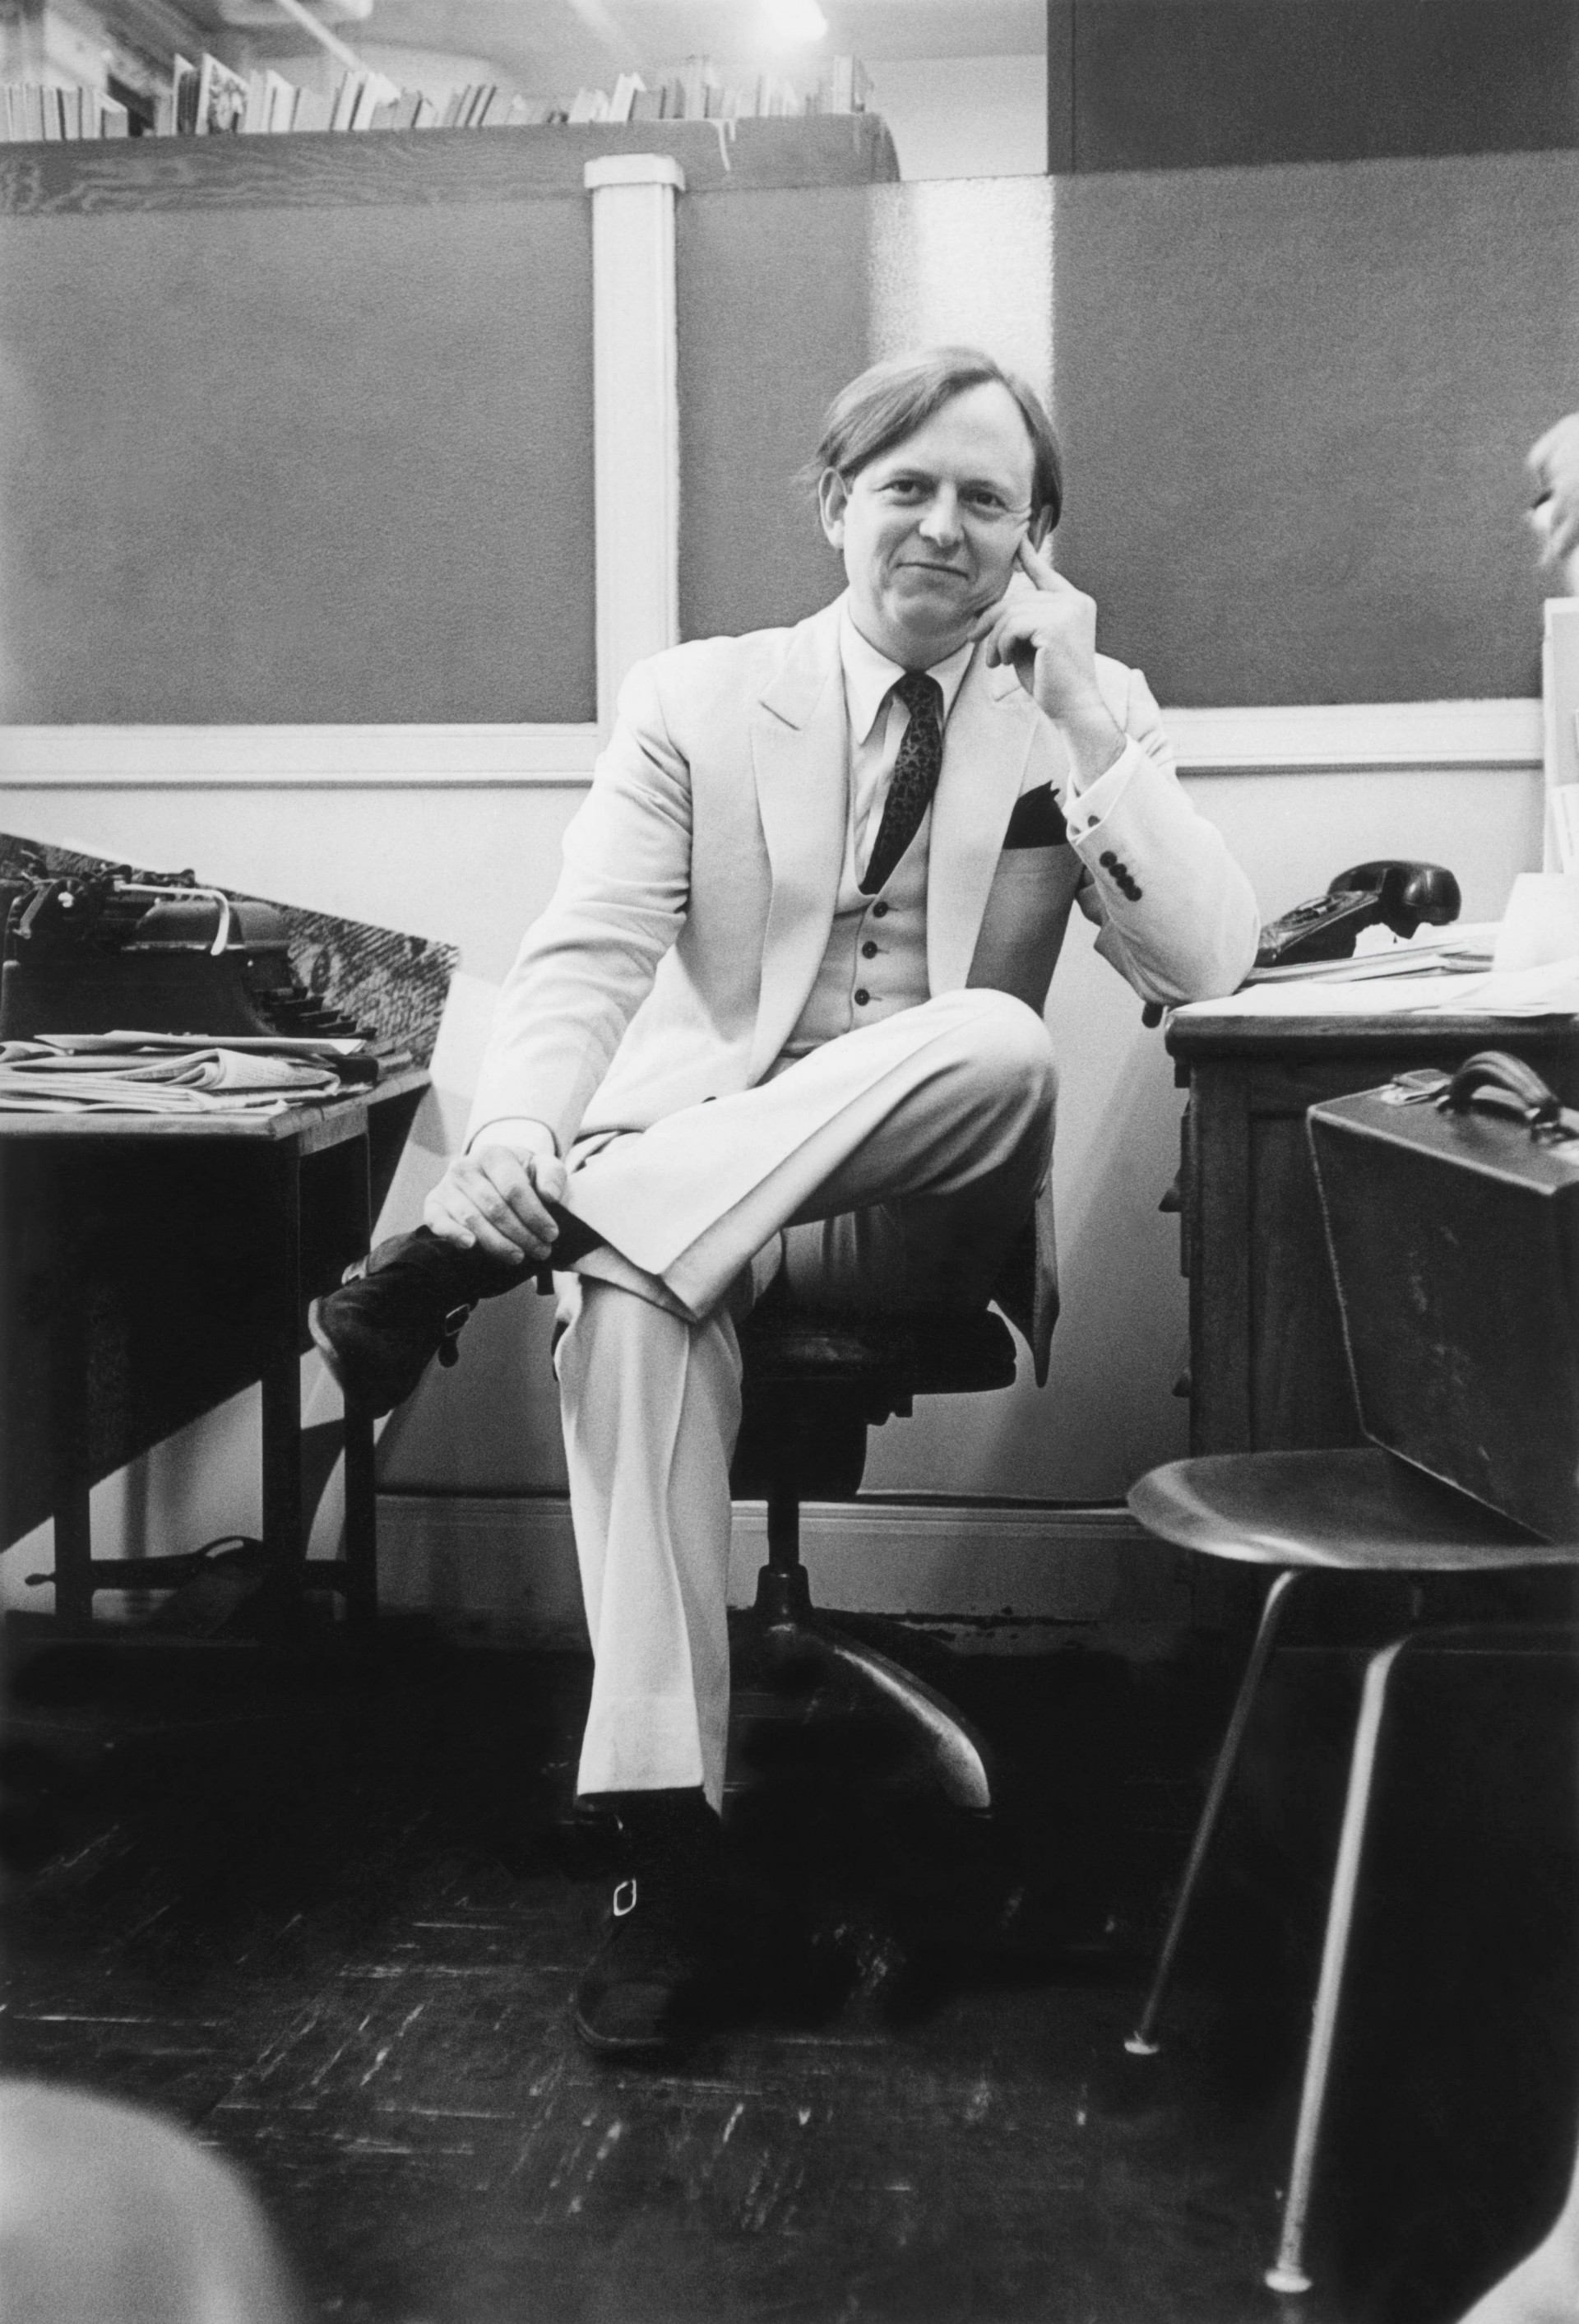 017 Essay Example Tom Wolfe Essays Gettyimages Impressive That Popularized A Phrase 70s 1920